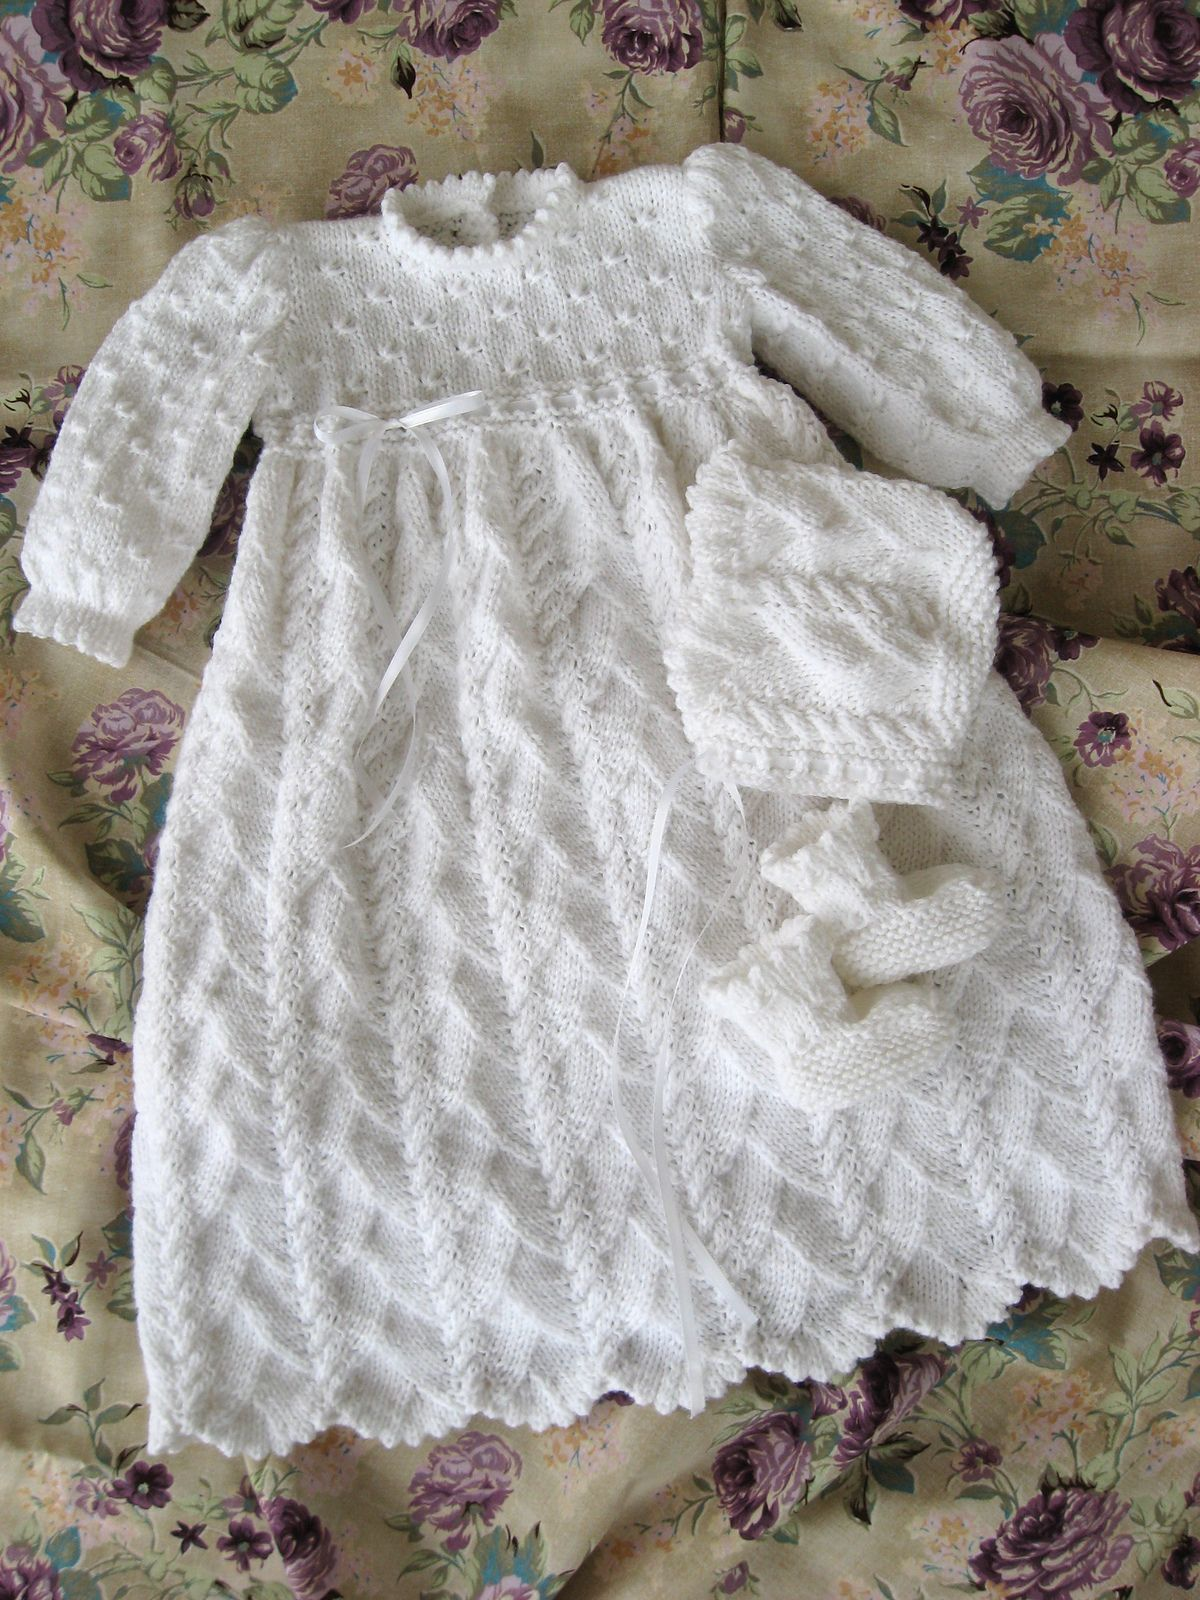 65f73a897 Ocean Breeze Christening Gown pattern by Judy Lamb | knitting | Knit ...